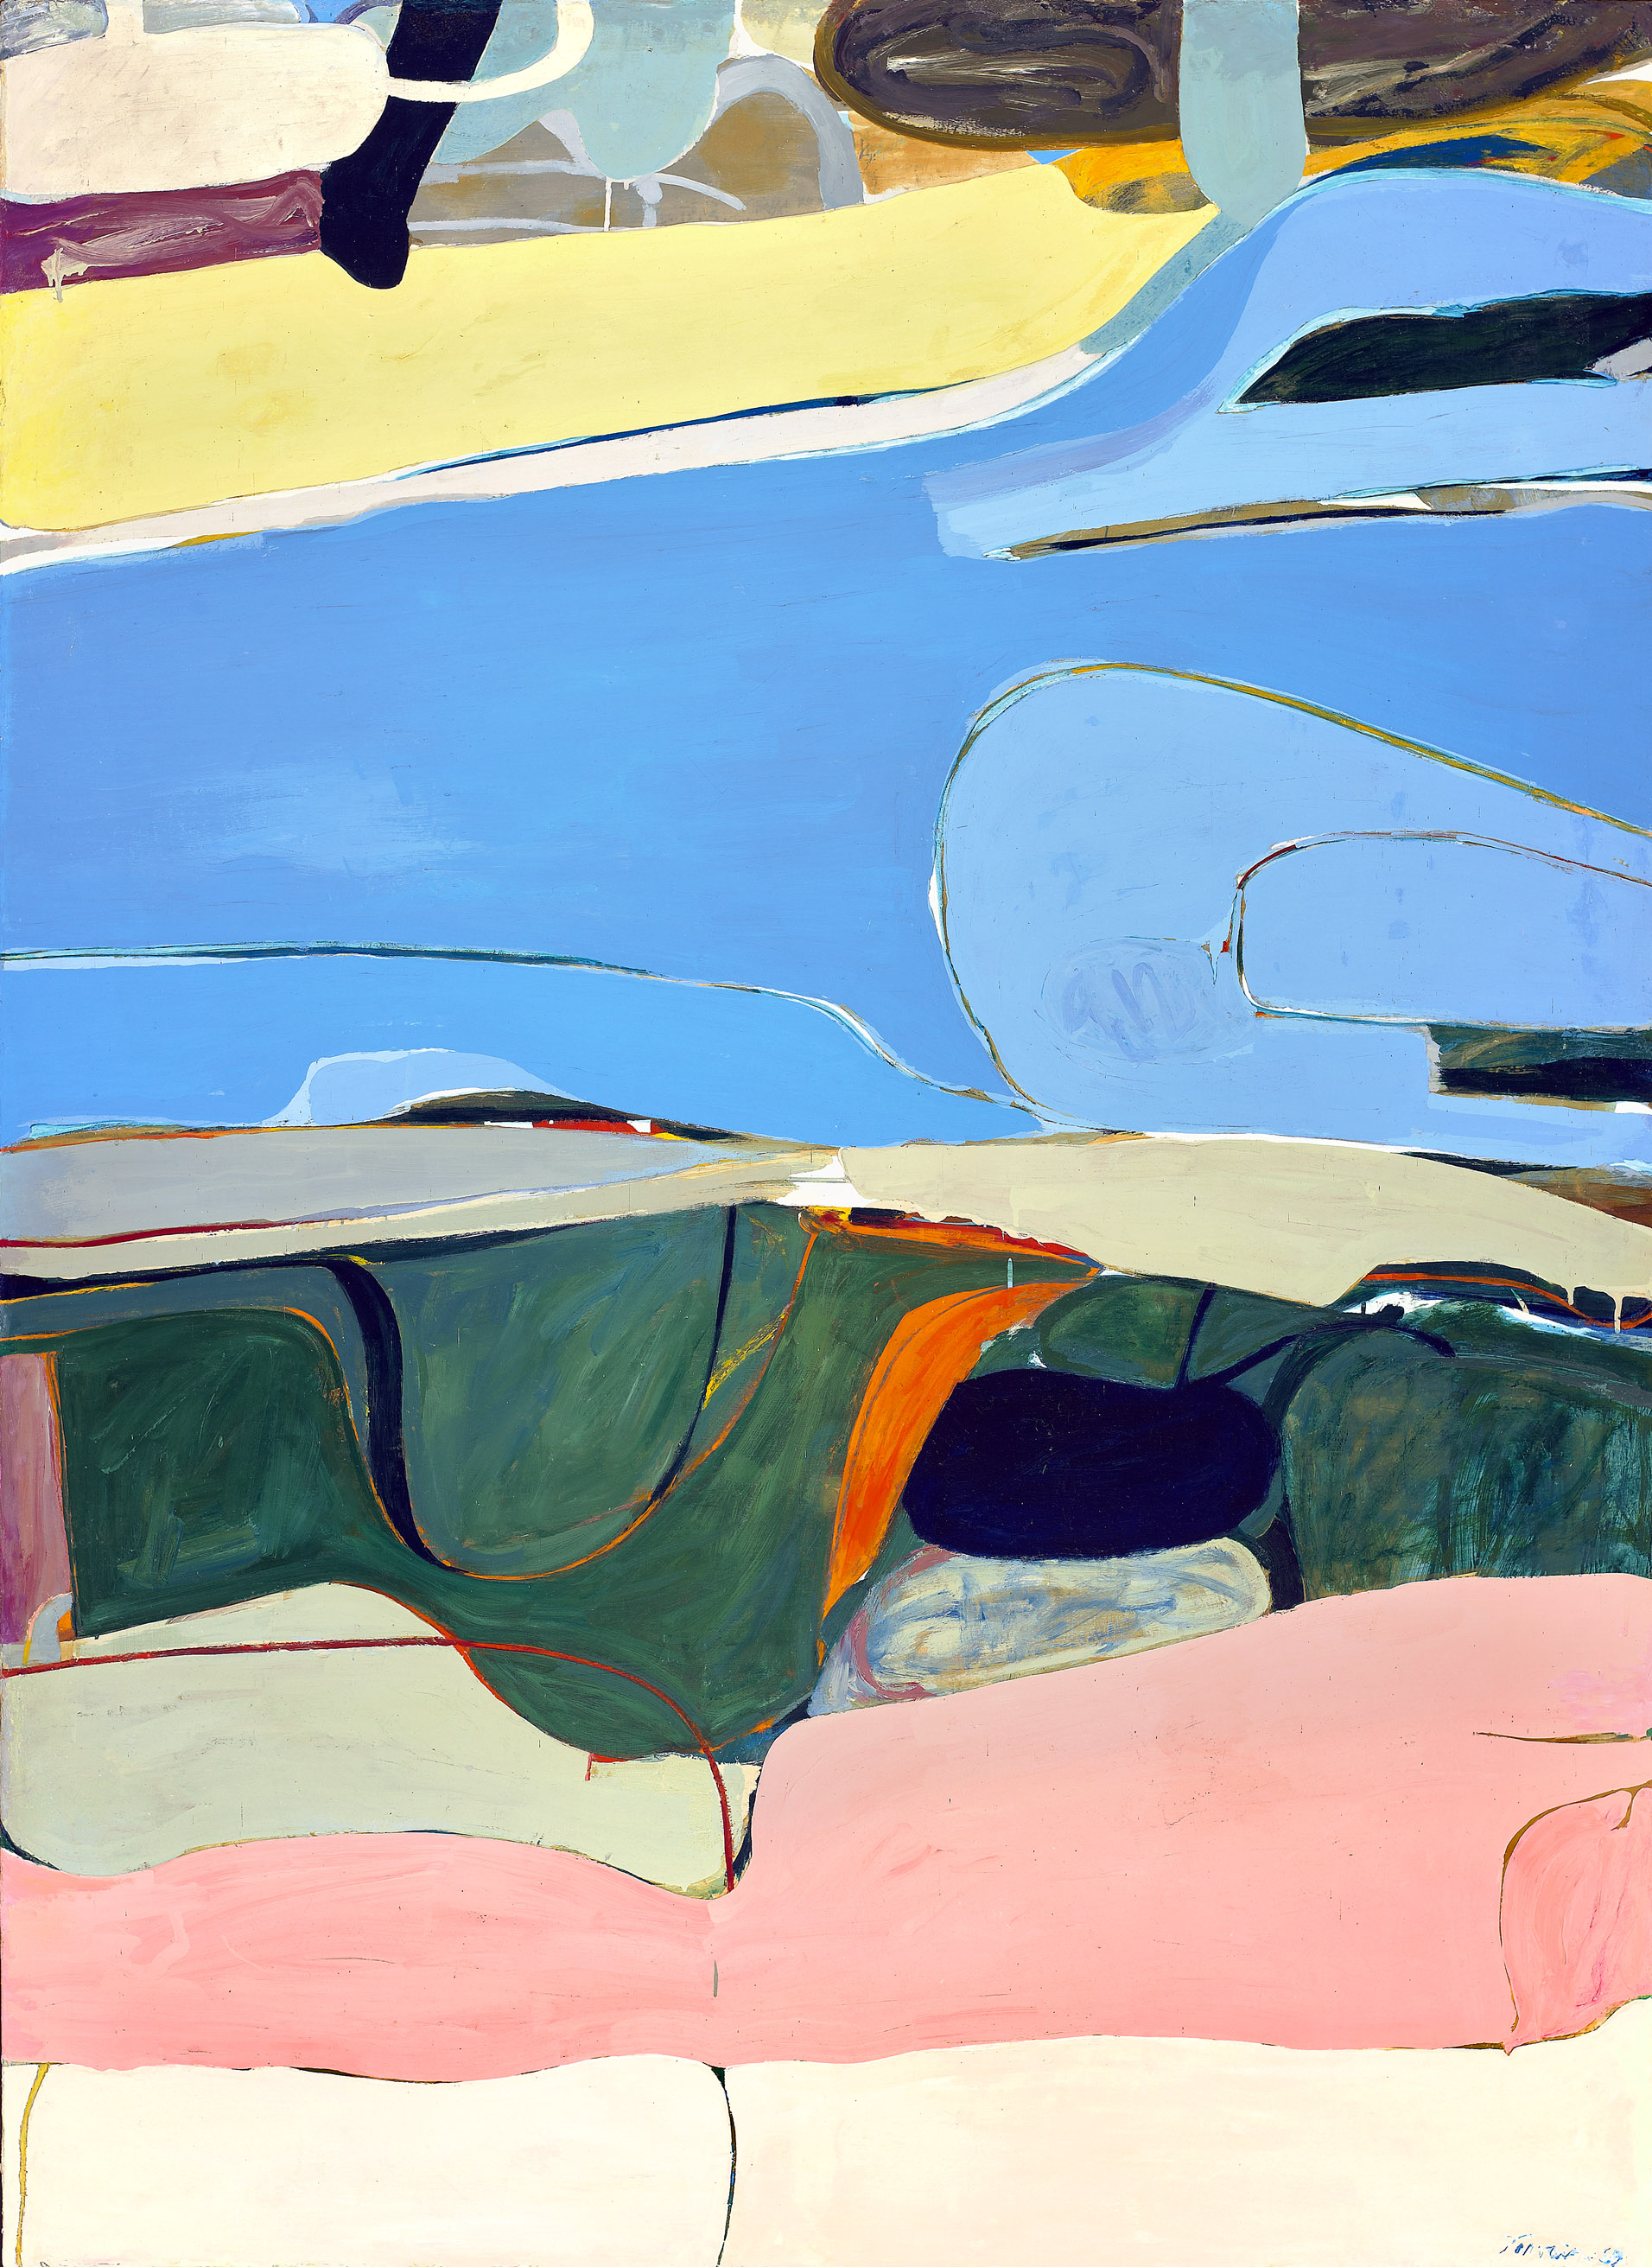 Hudson River Series , 1959 oil on canvas 79 1/2 x 58 1/2 inches; 201.9 x 148.6 centimeters